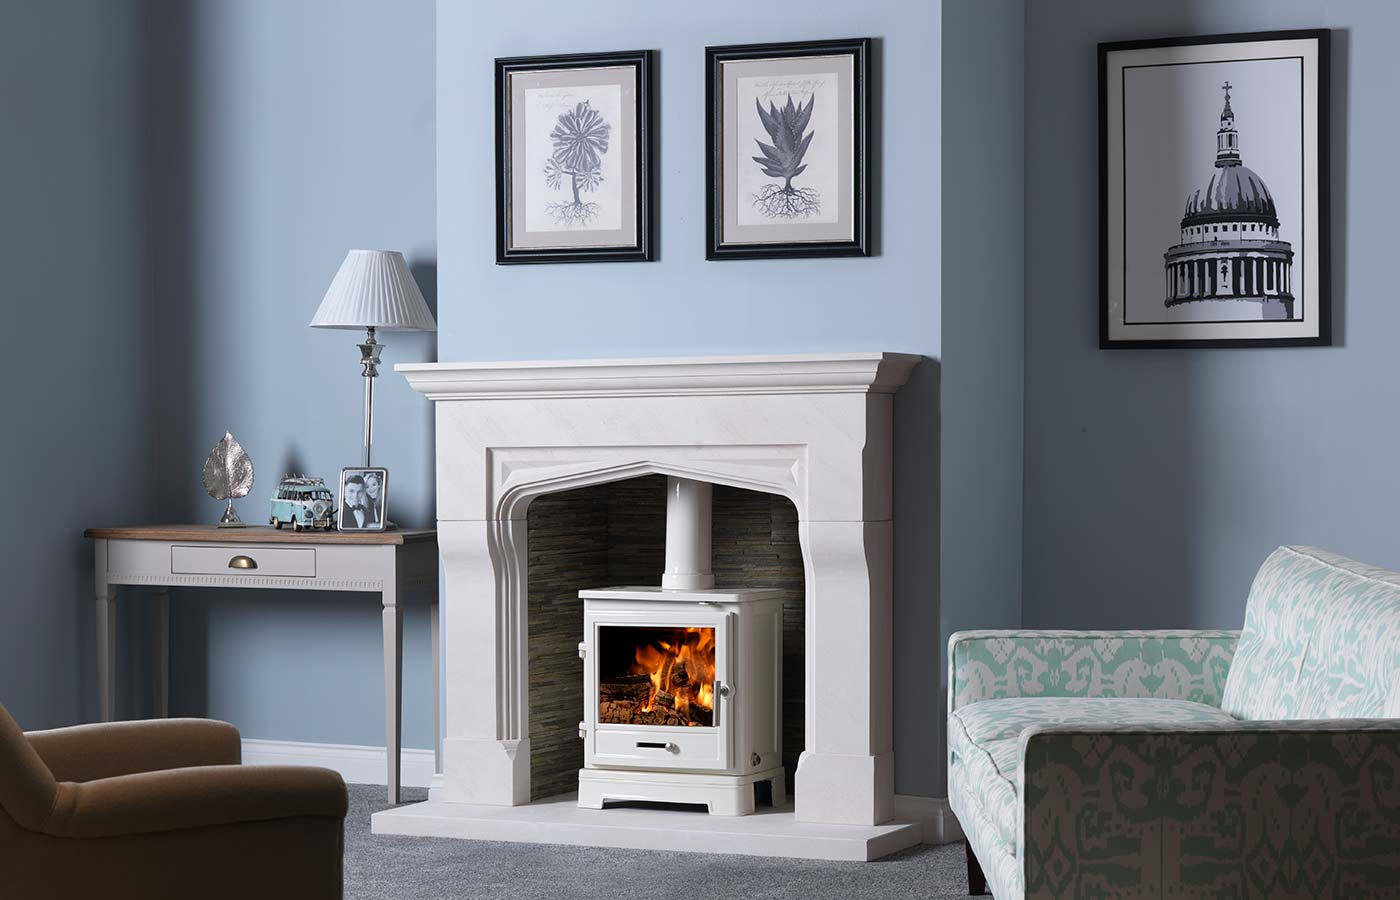 The Beaufort Fireplace